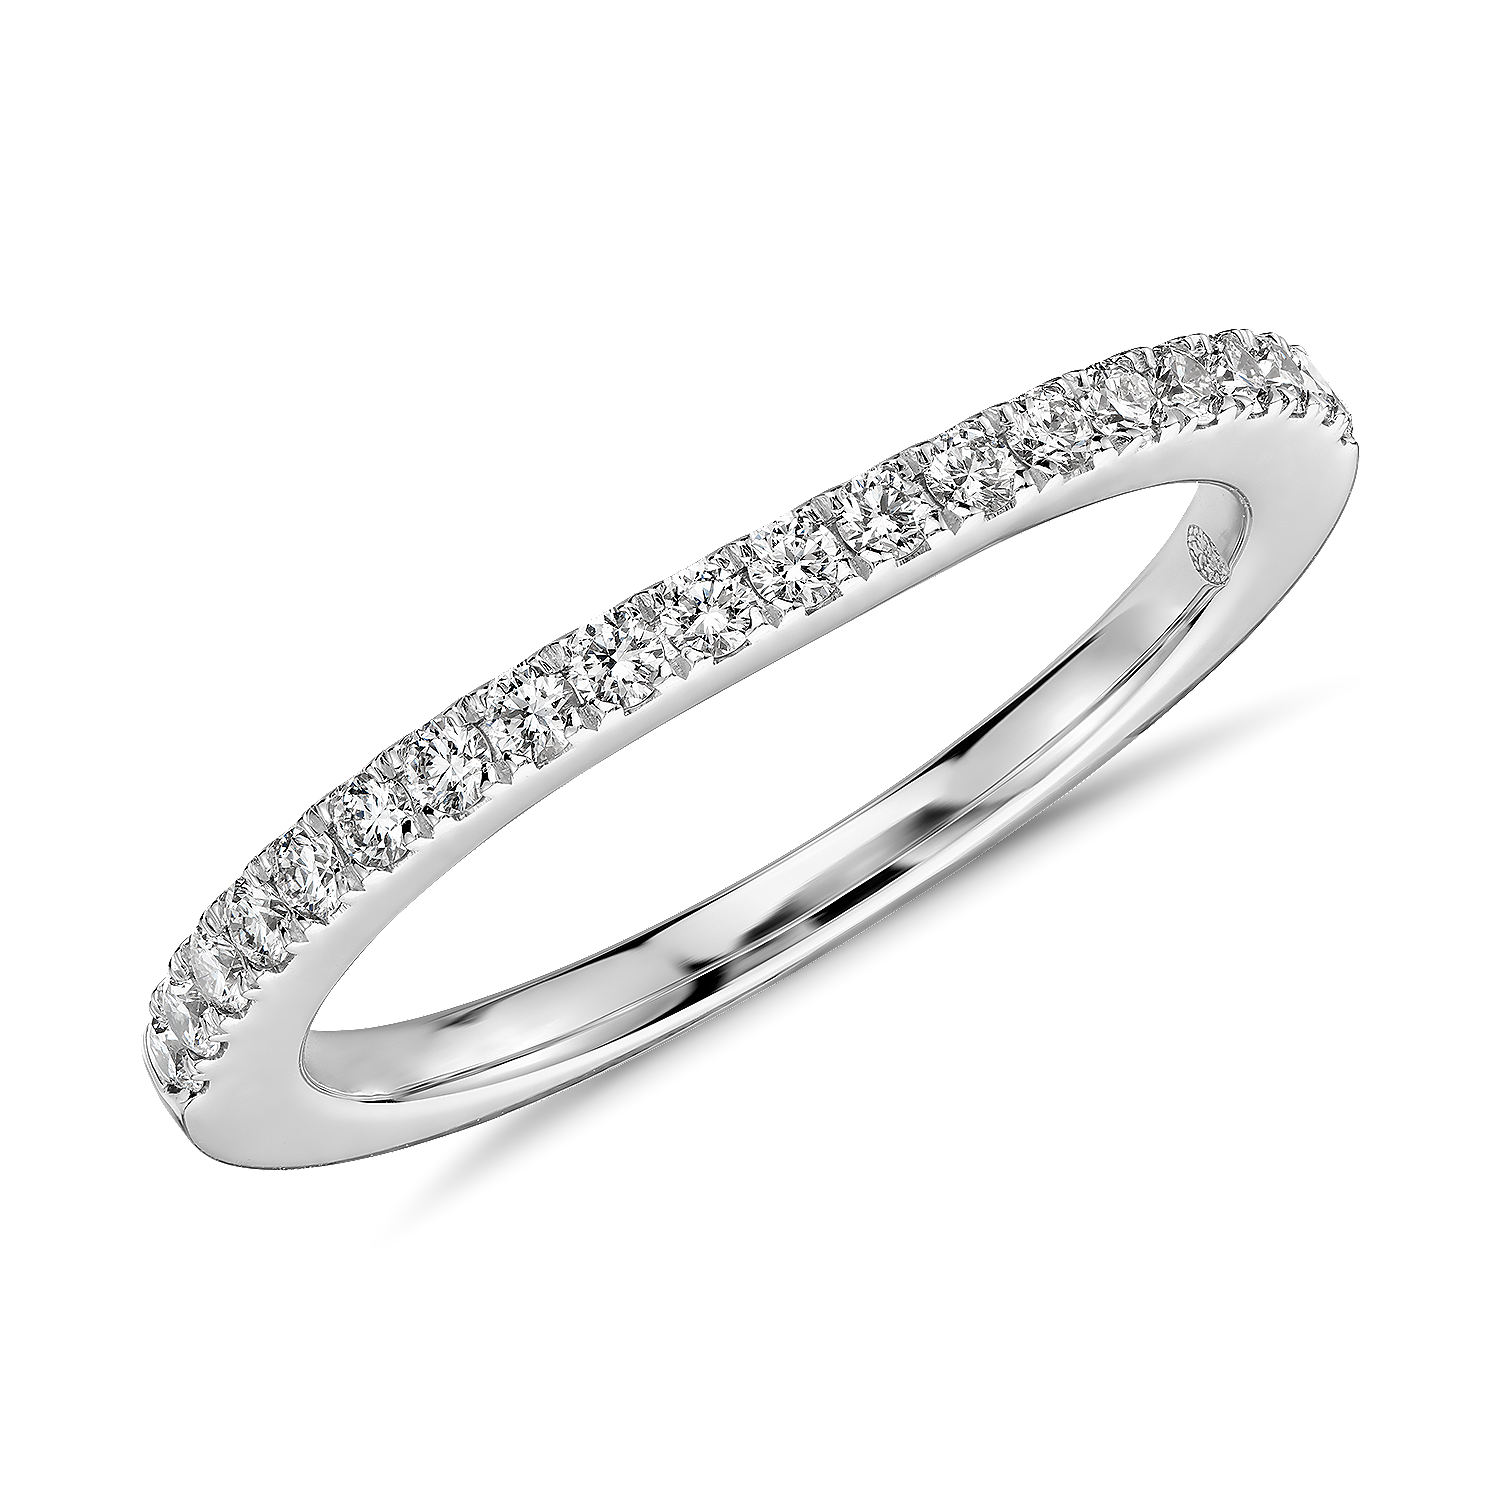 54034_Colin Cowie Curved Pavé Diamond Ring in Platinum 0.35 ct. tw.jpg